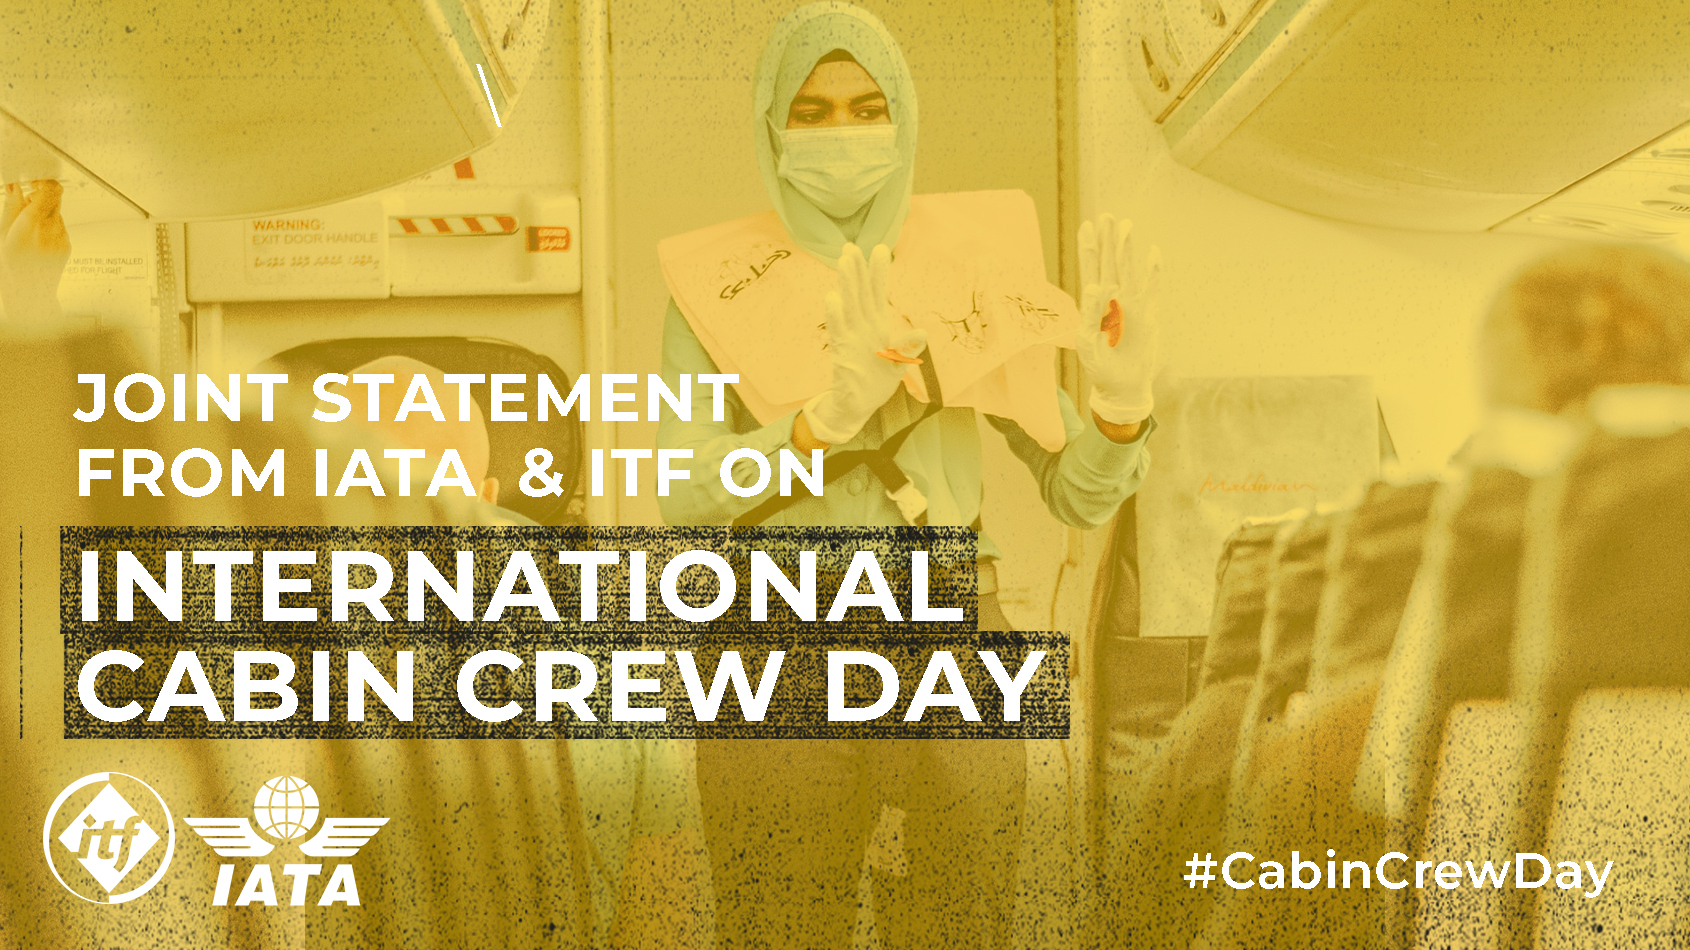 Joint statement from IATA and ITF on International Cabin Crew Day